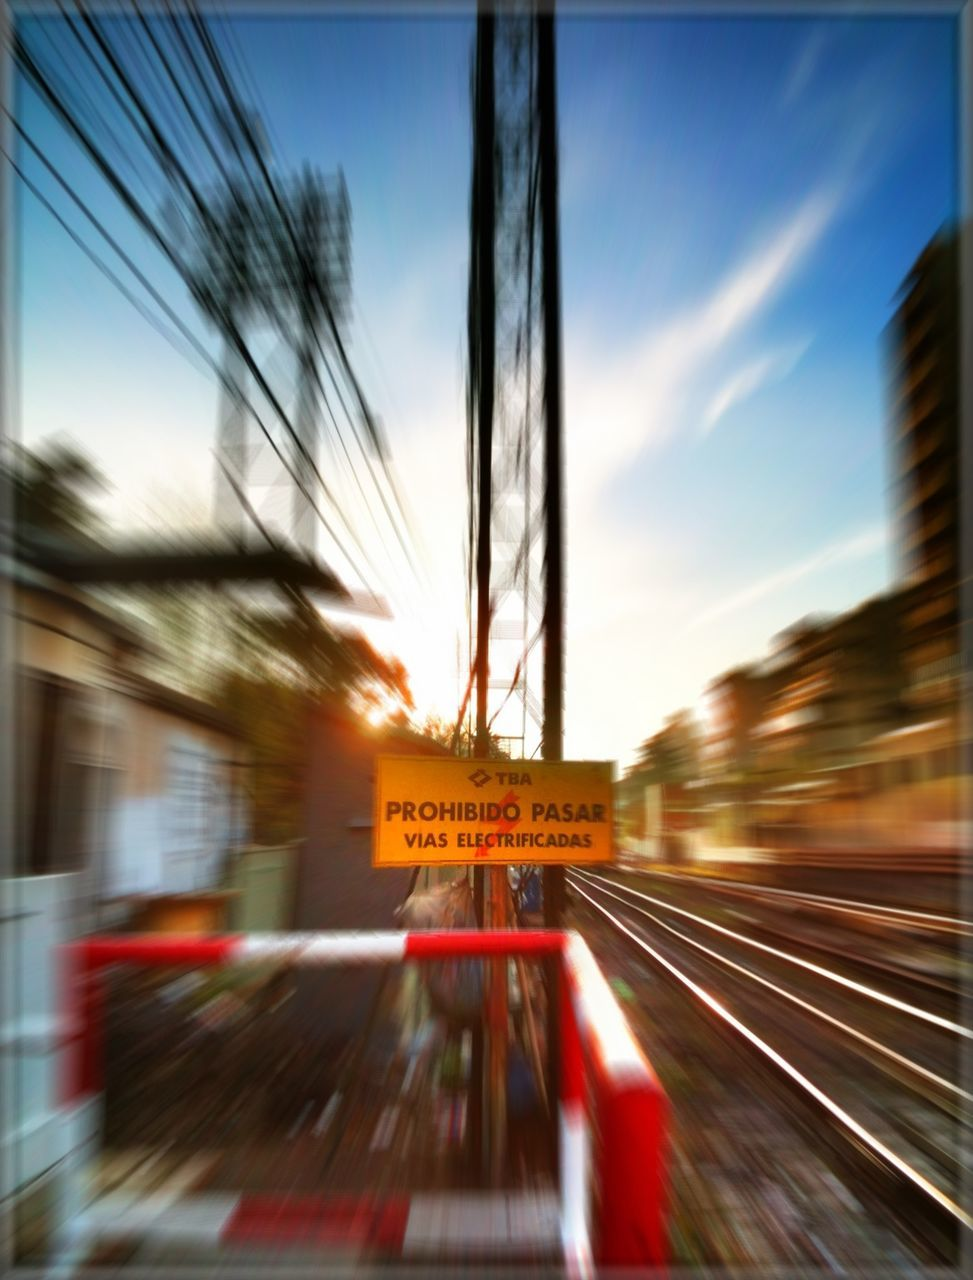 blurred motion, transportation, speed, motion, rail transportation, train - vehicle, railroad track, public transportation, sky, no people, mode of transport, communication, land vehicle, sunset, tree, outdoors, day, architecture, close-up